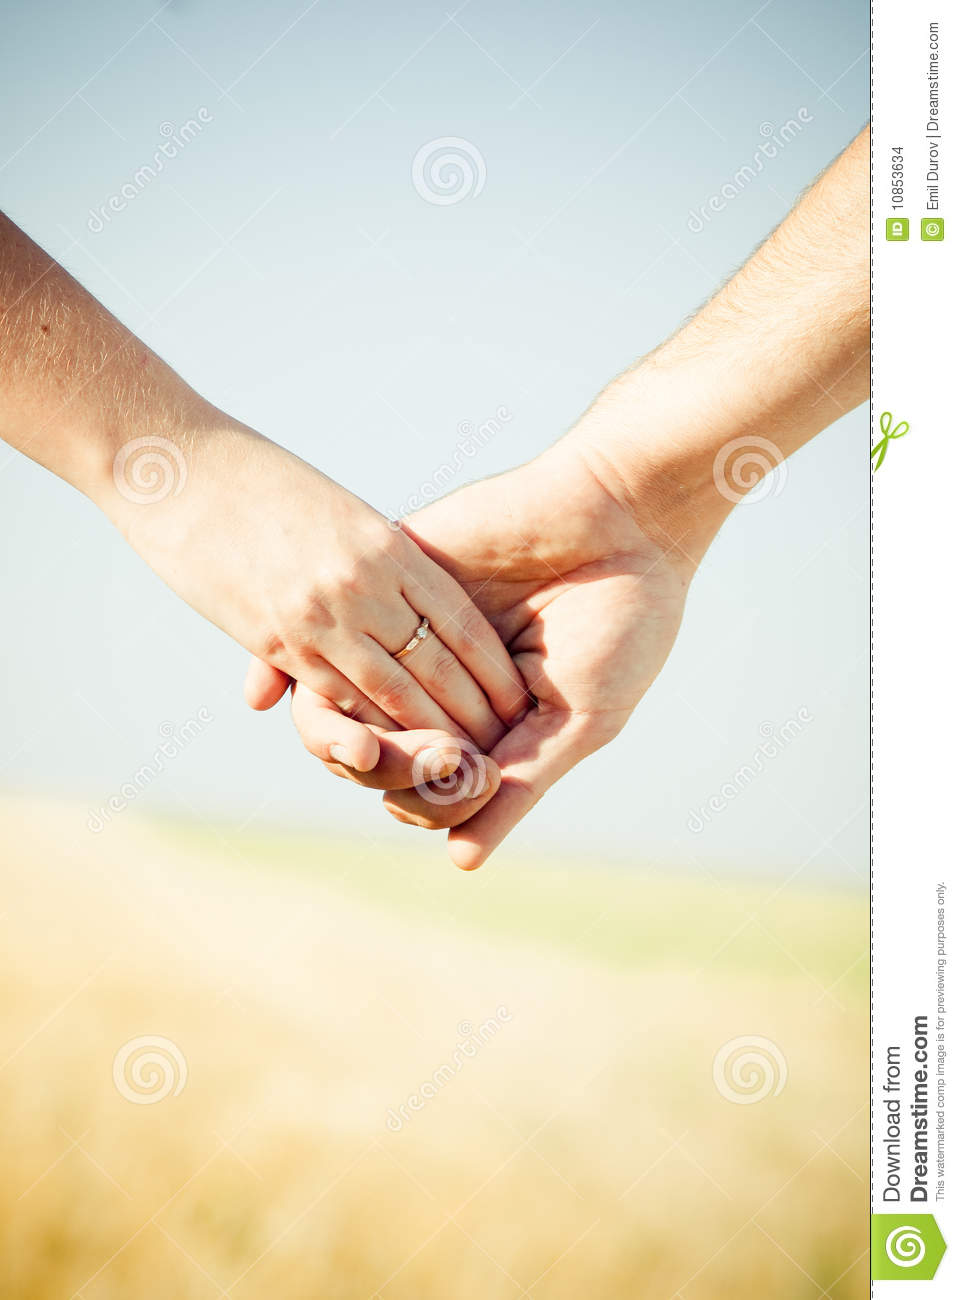 Hands with Wedding Ring stock photo Image of family  10853634